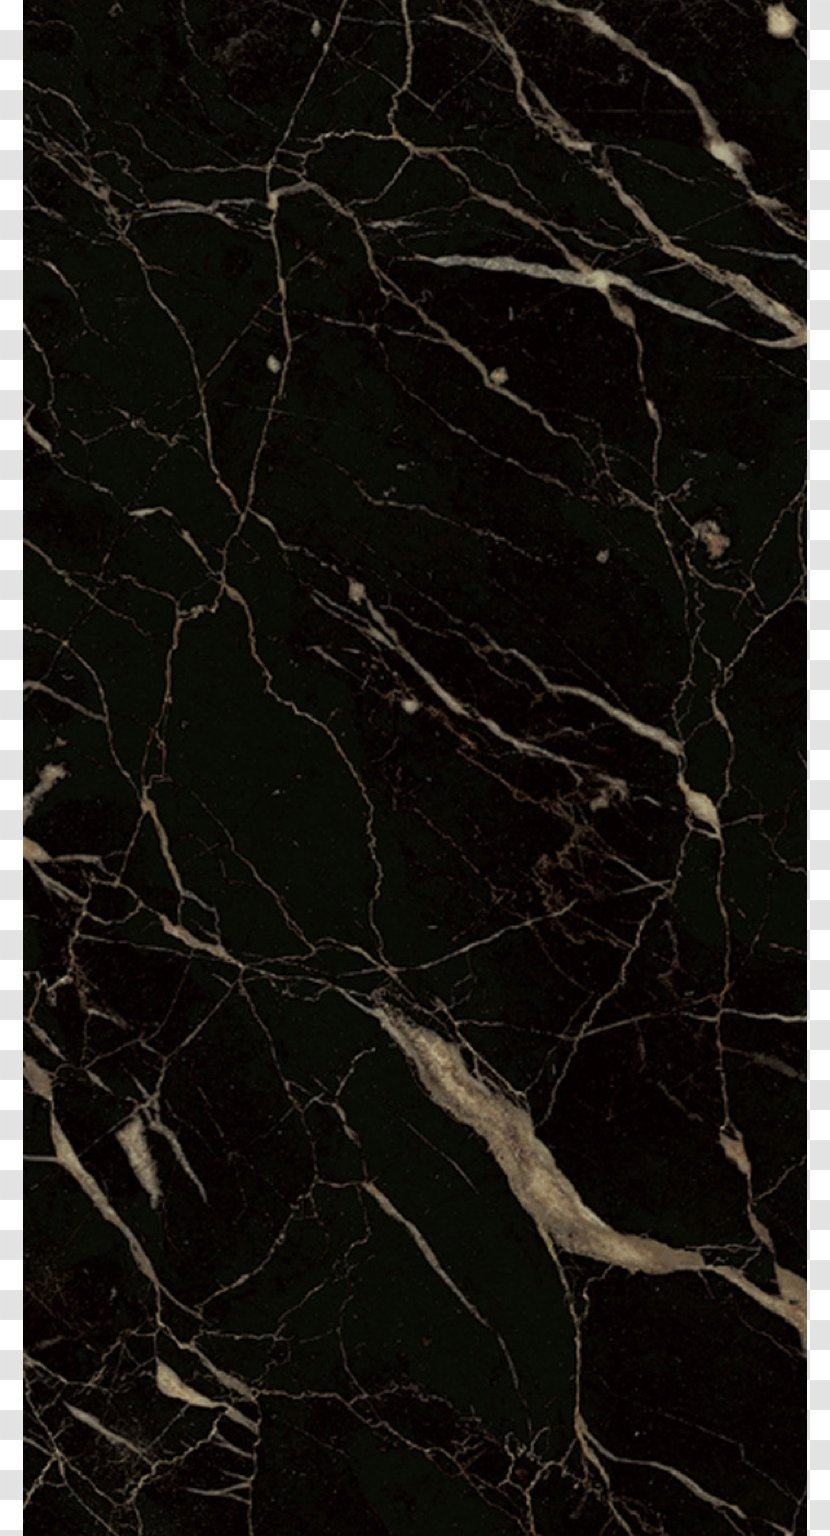 Iphone X Marble Tile Floor Wallpaper Darkness Marble Transparent Png